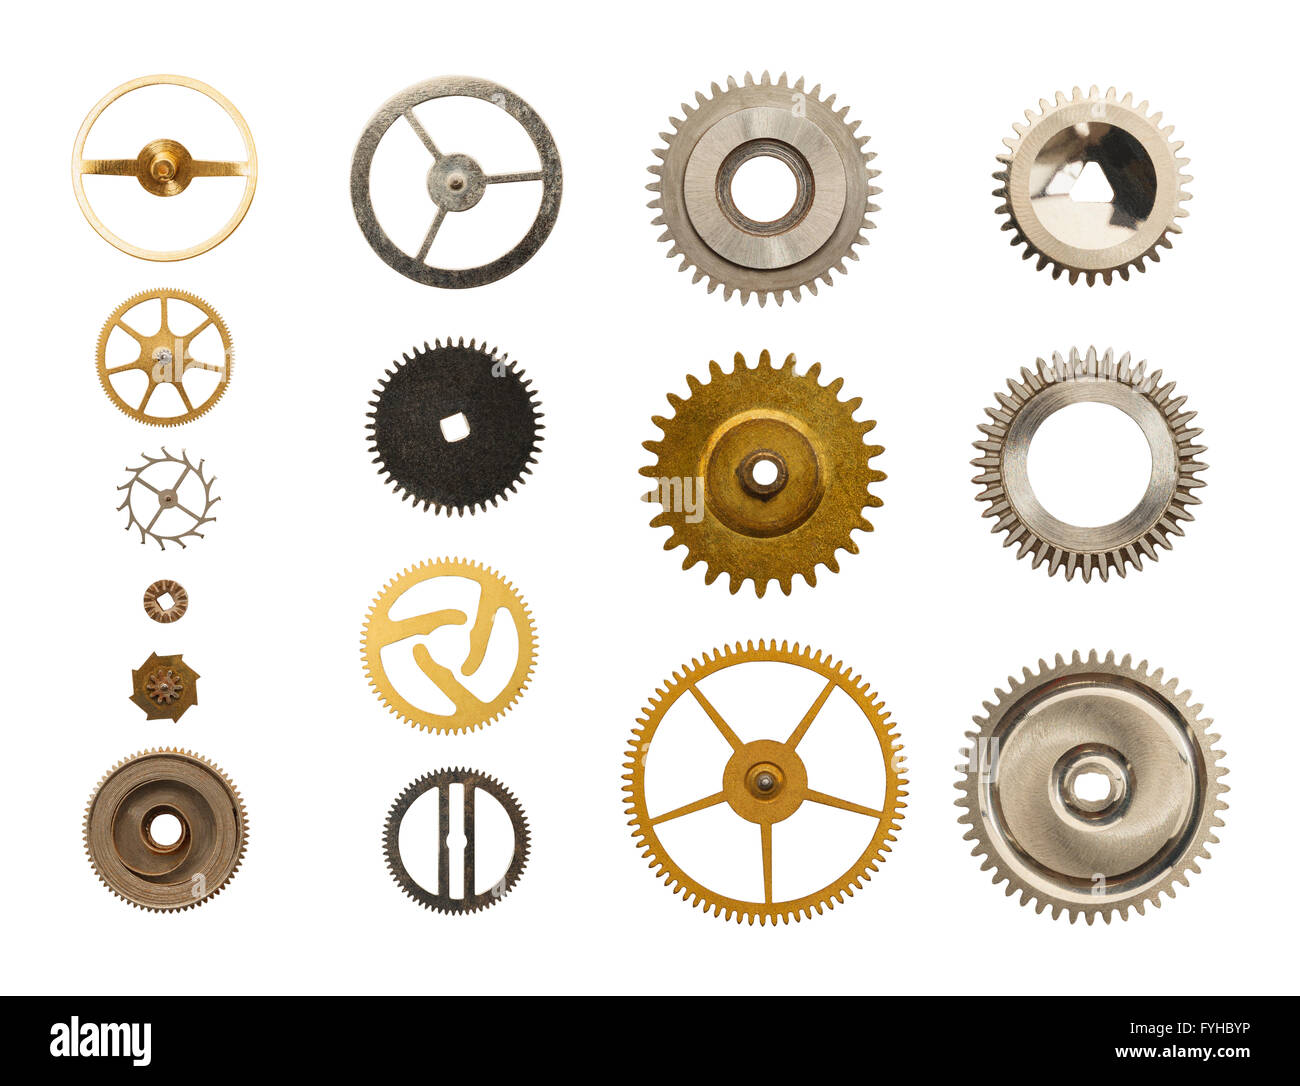 Old Metal Watch Gears Isolated on White Background. - Stock Image